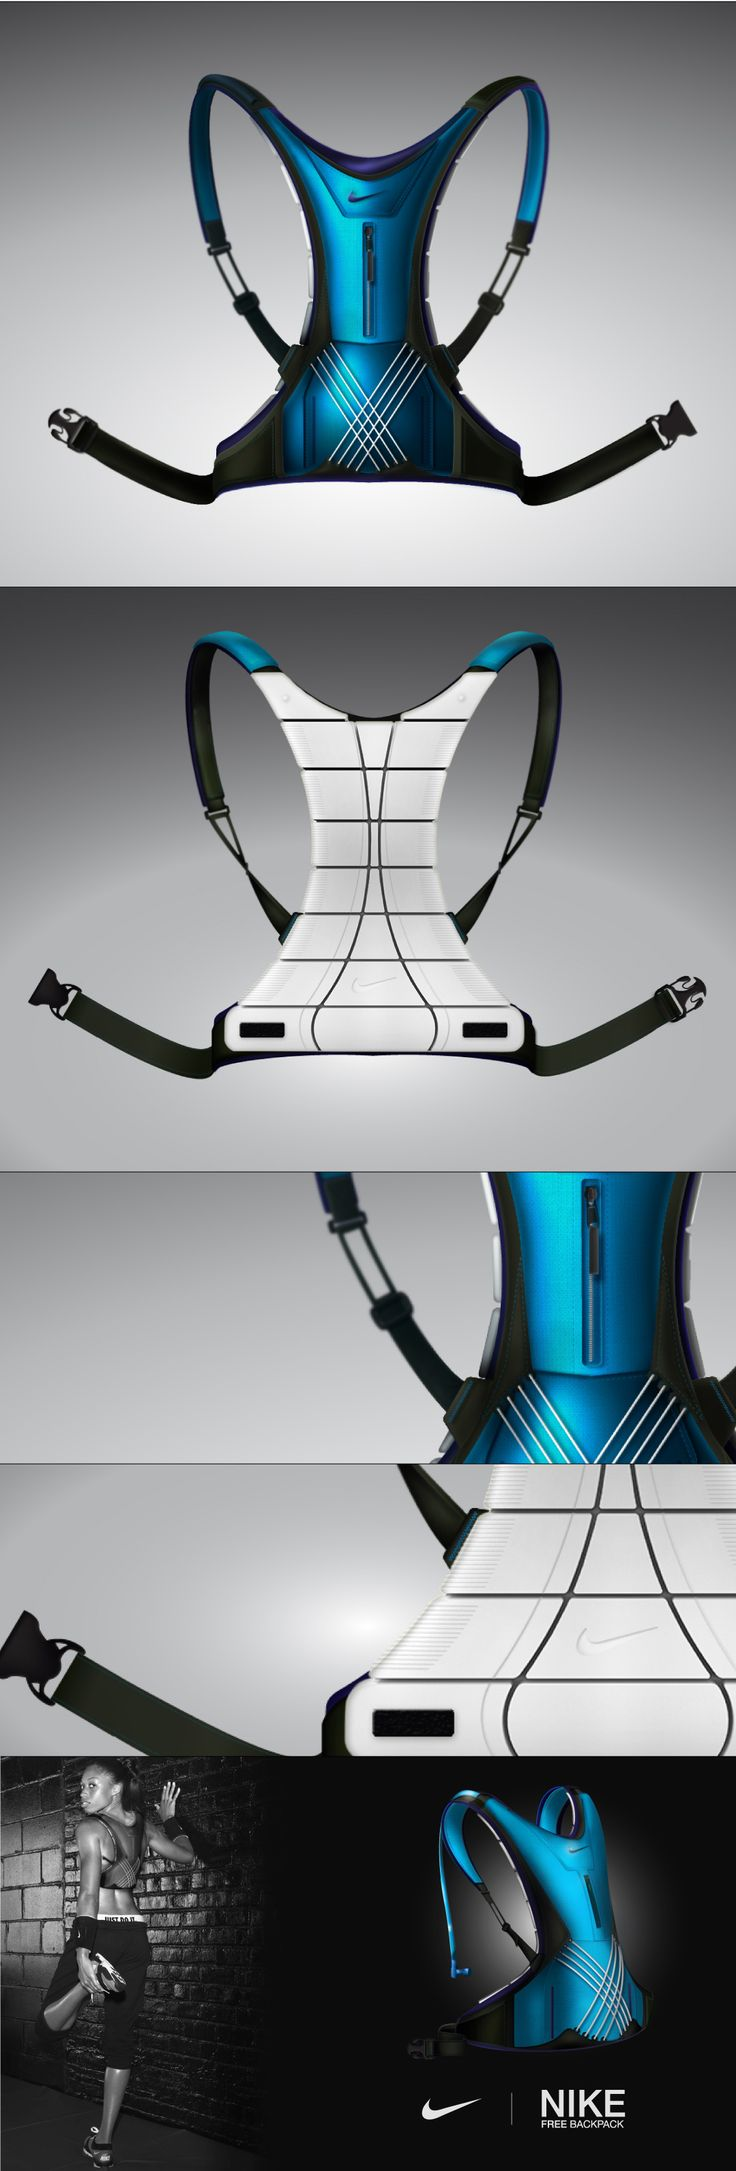 Nike Backpack | Valentin Dequidt